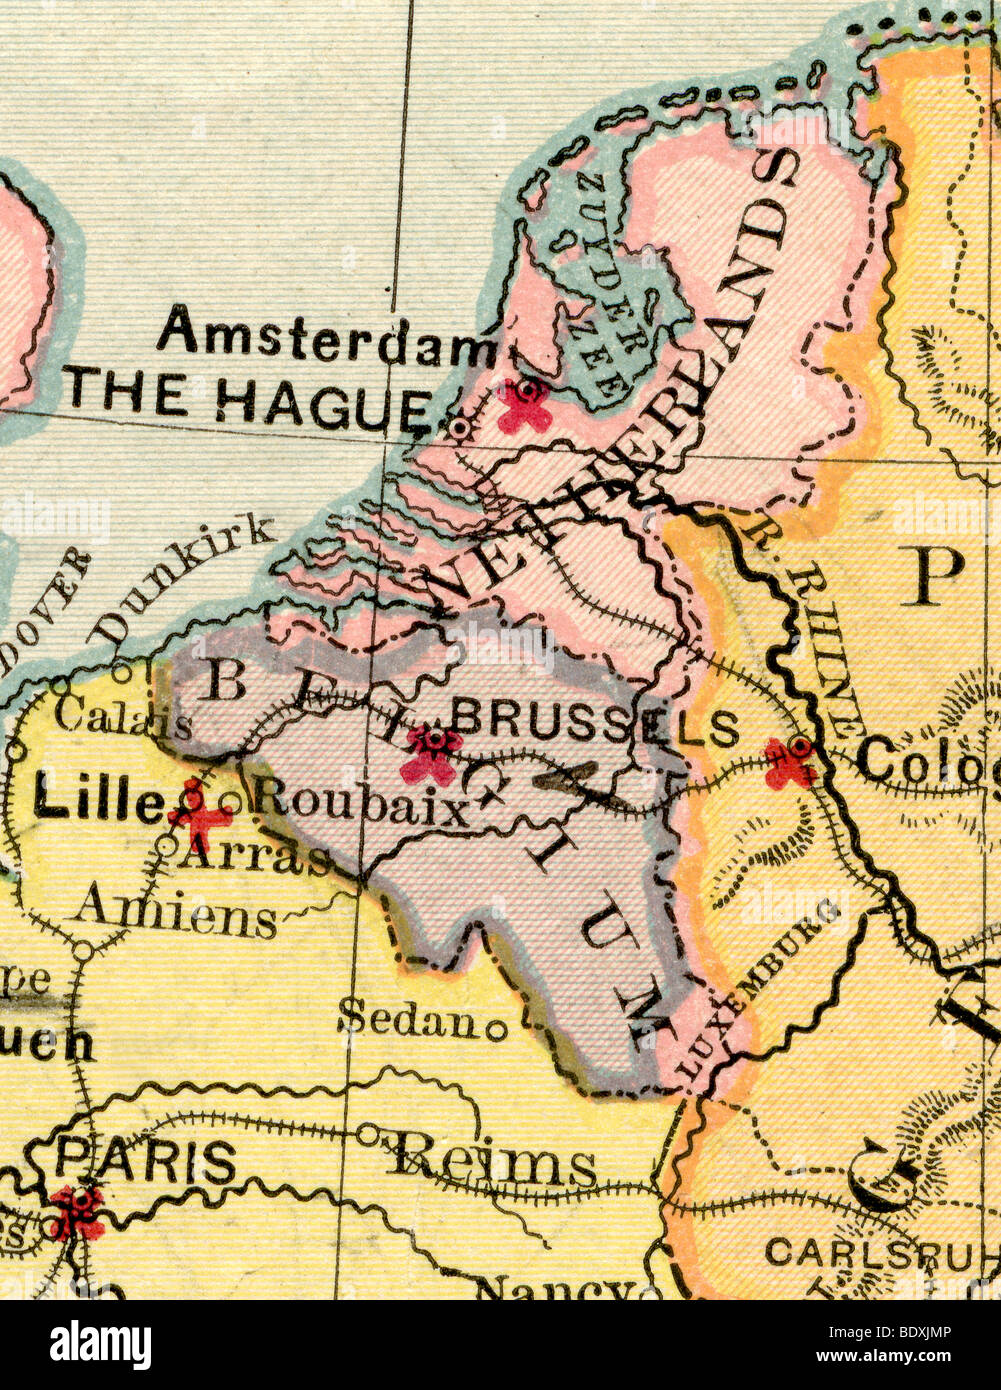 Original old map of Belgium and Netherlands from 1875 geography